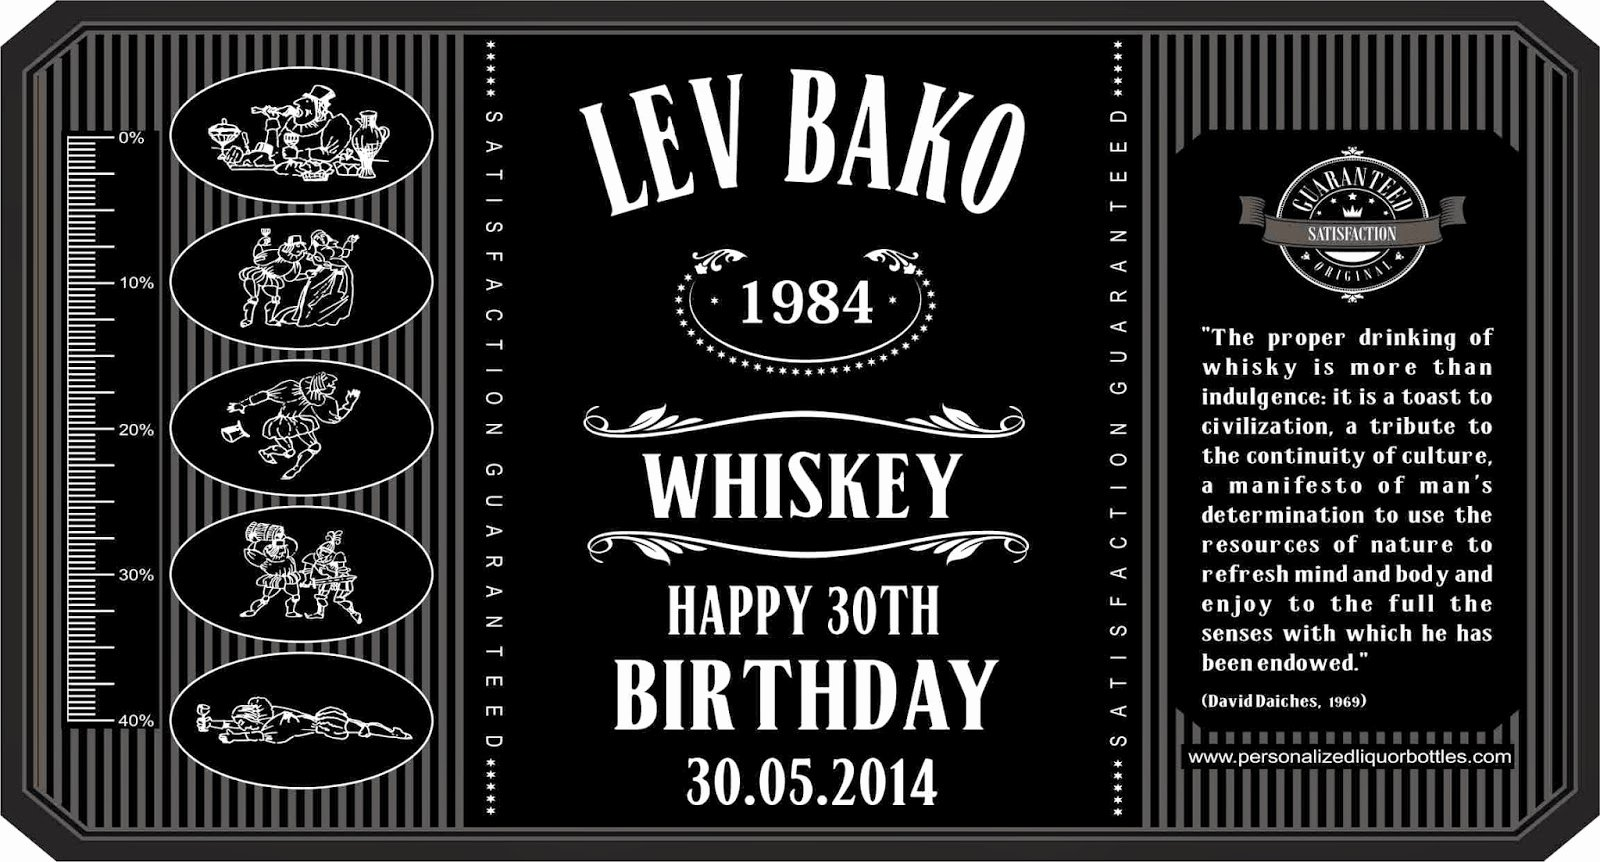 Liquor Bottle Labels Template Unique Personalized Liquor Bottles Personalized Whiskey Bottles